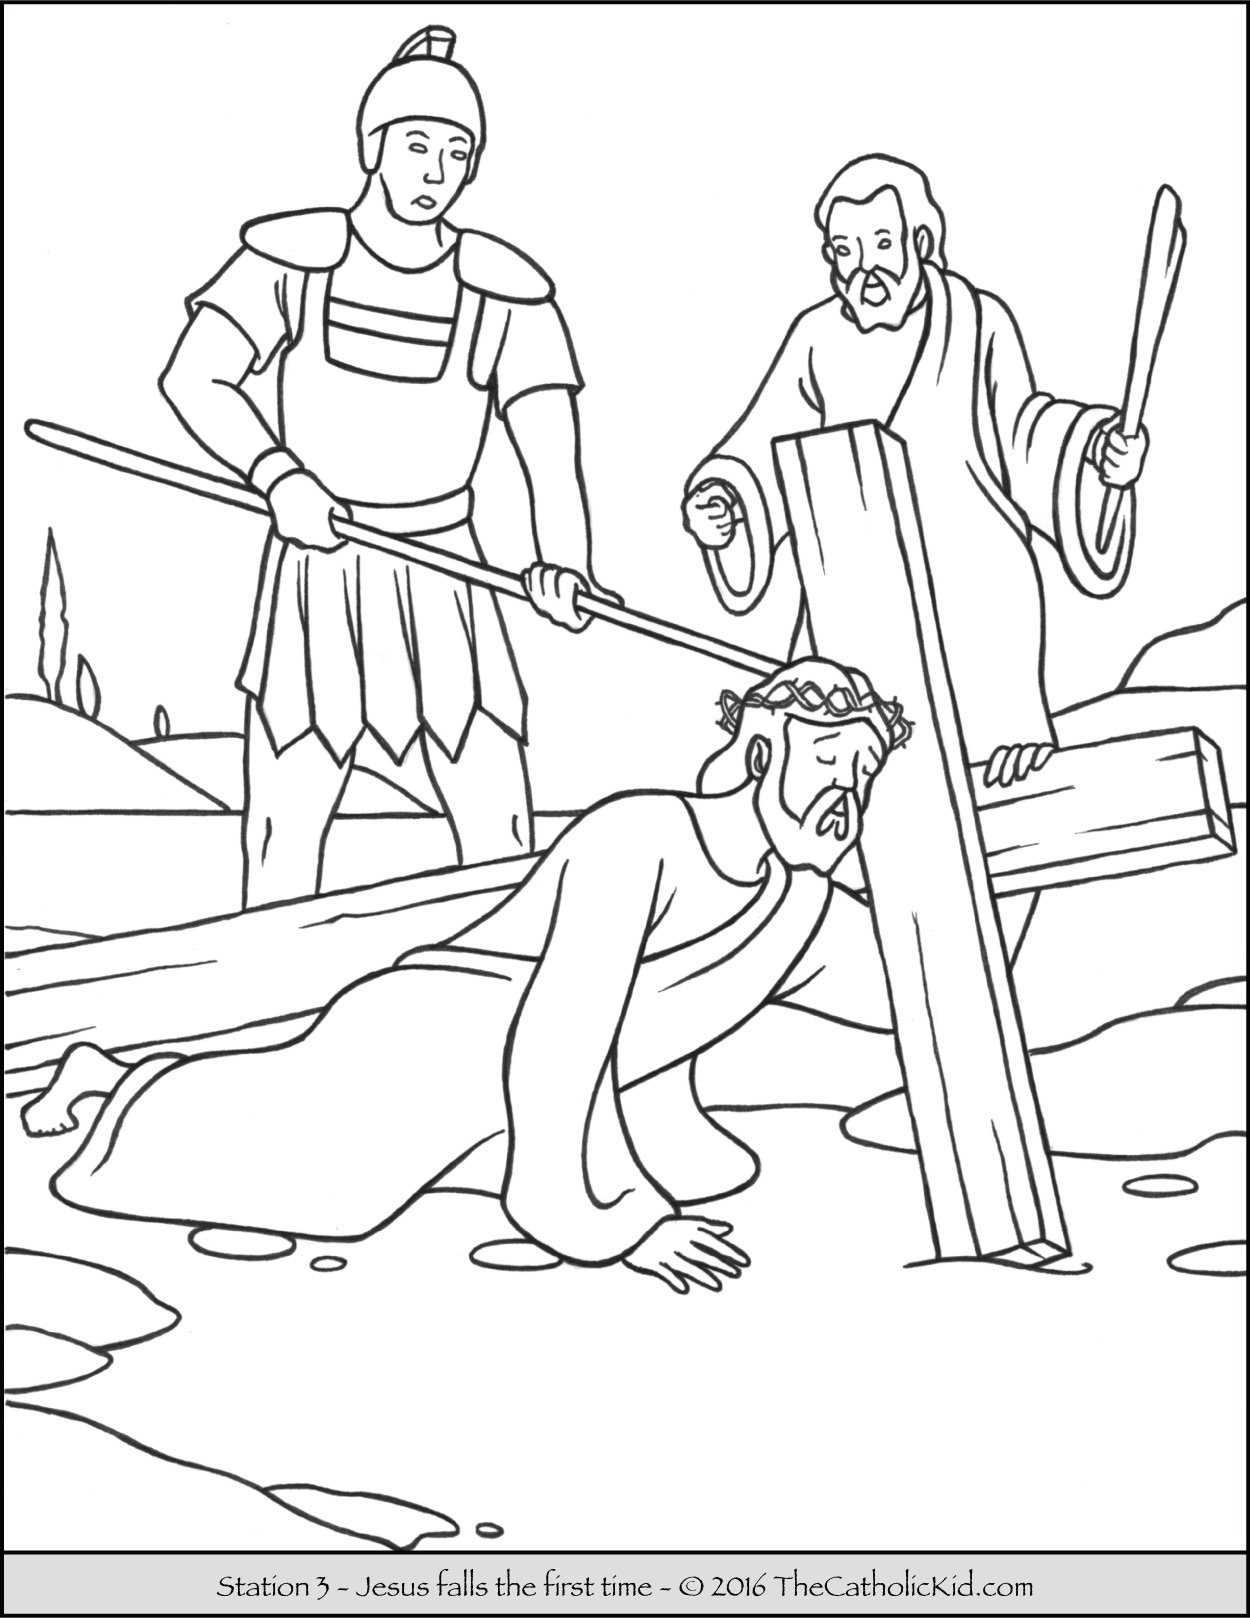 coloring pages about jesus - the big christian family lent 2018